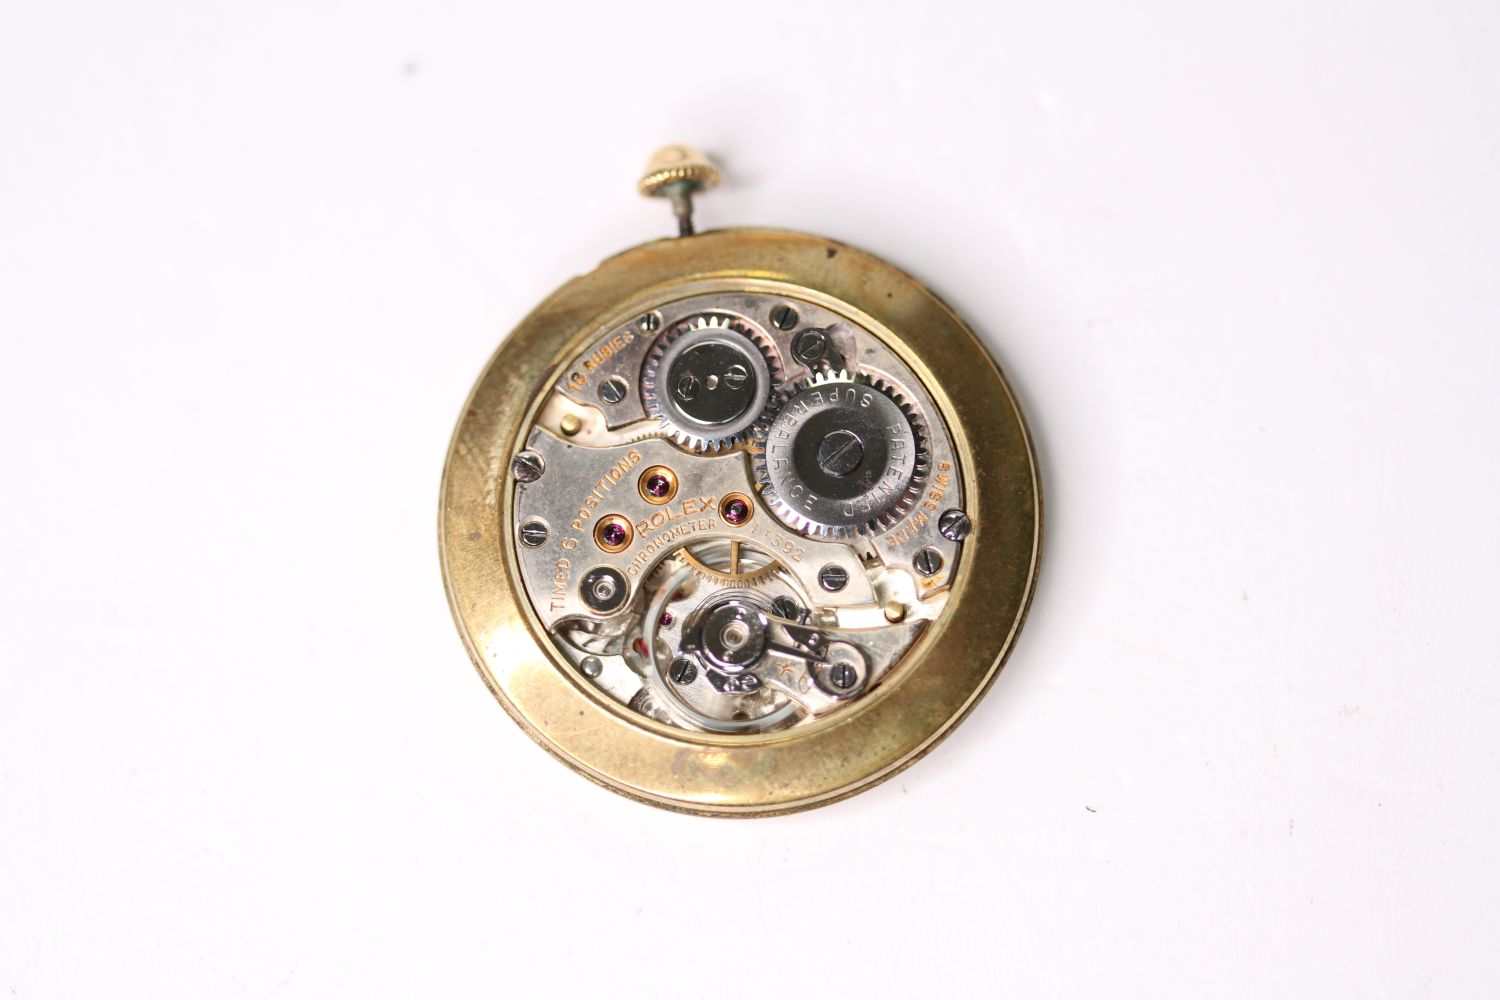 VINTAGE ROLEX OVERSIZE WRISTWATCH CIRCA 1940s, circular silver dial with roman numerals and dot hour - Image 5 of 5